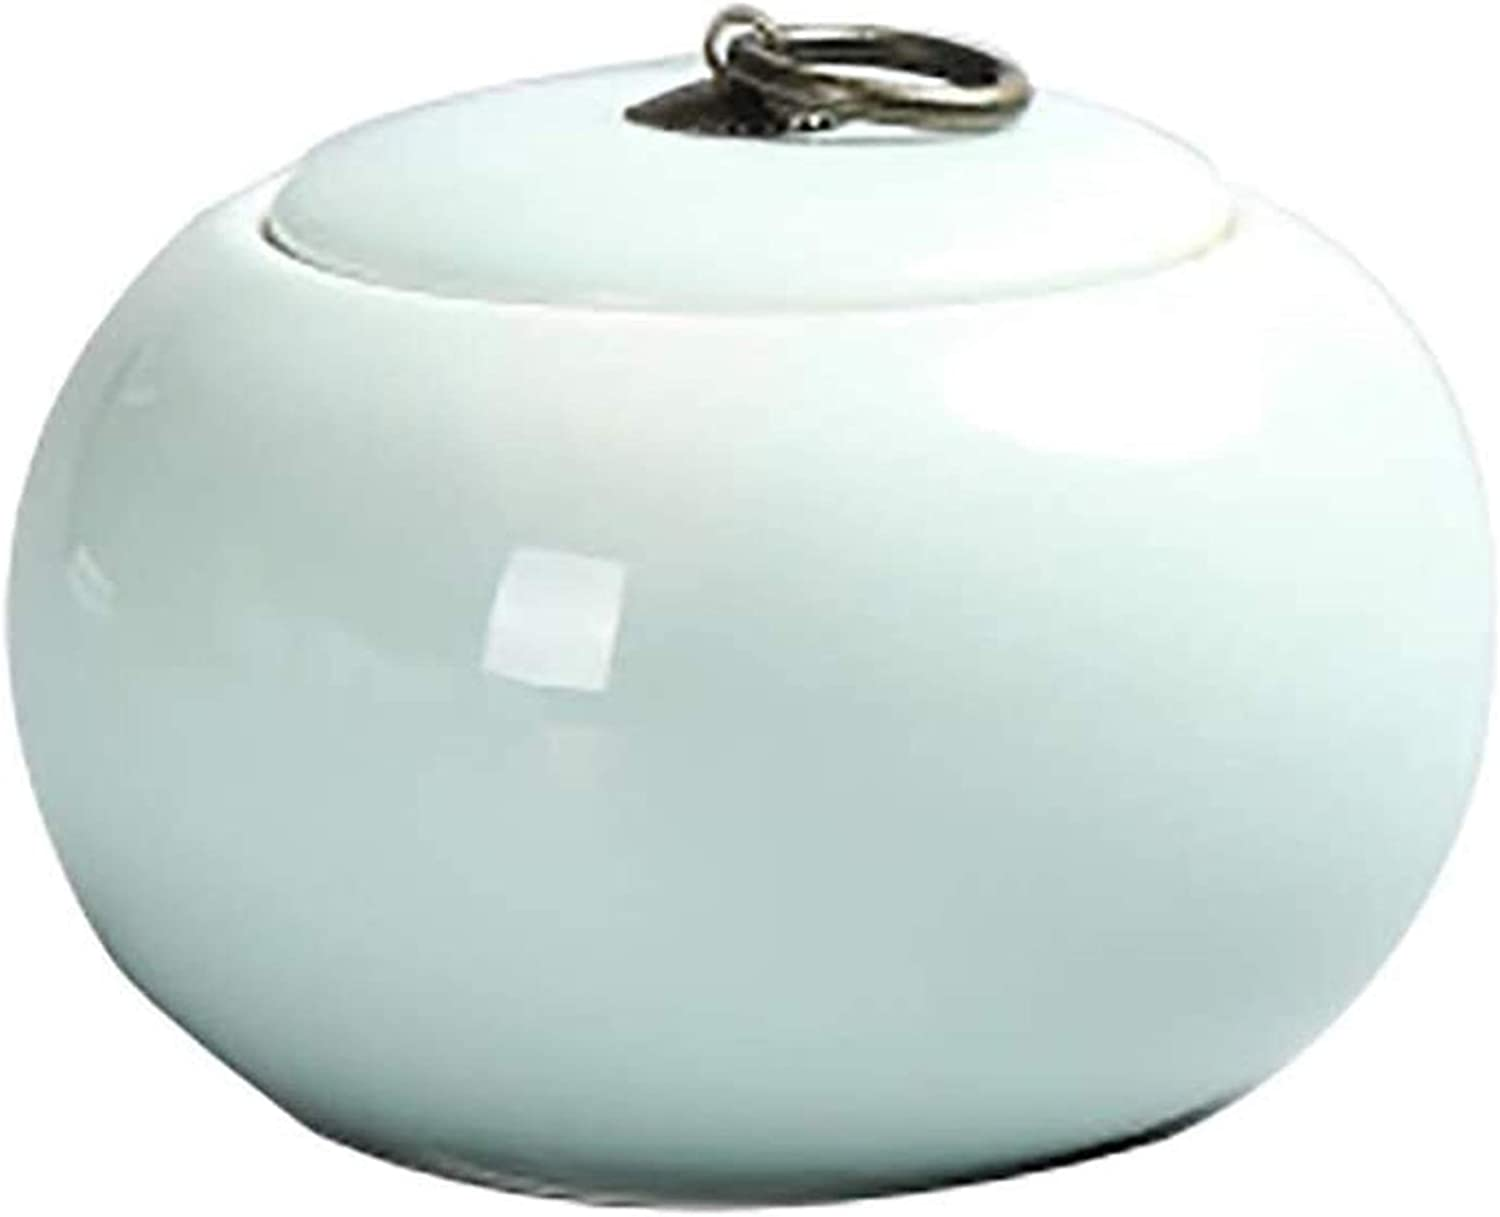 Cremation Sale Urns Max 82% OFF for Adult Funeral Decorative Ashes Burial